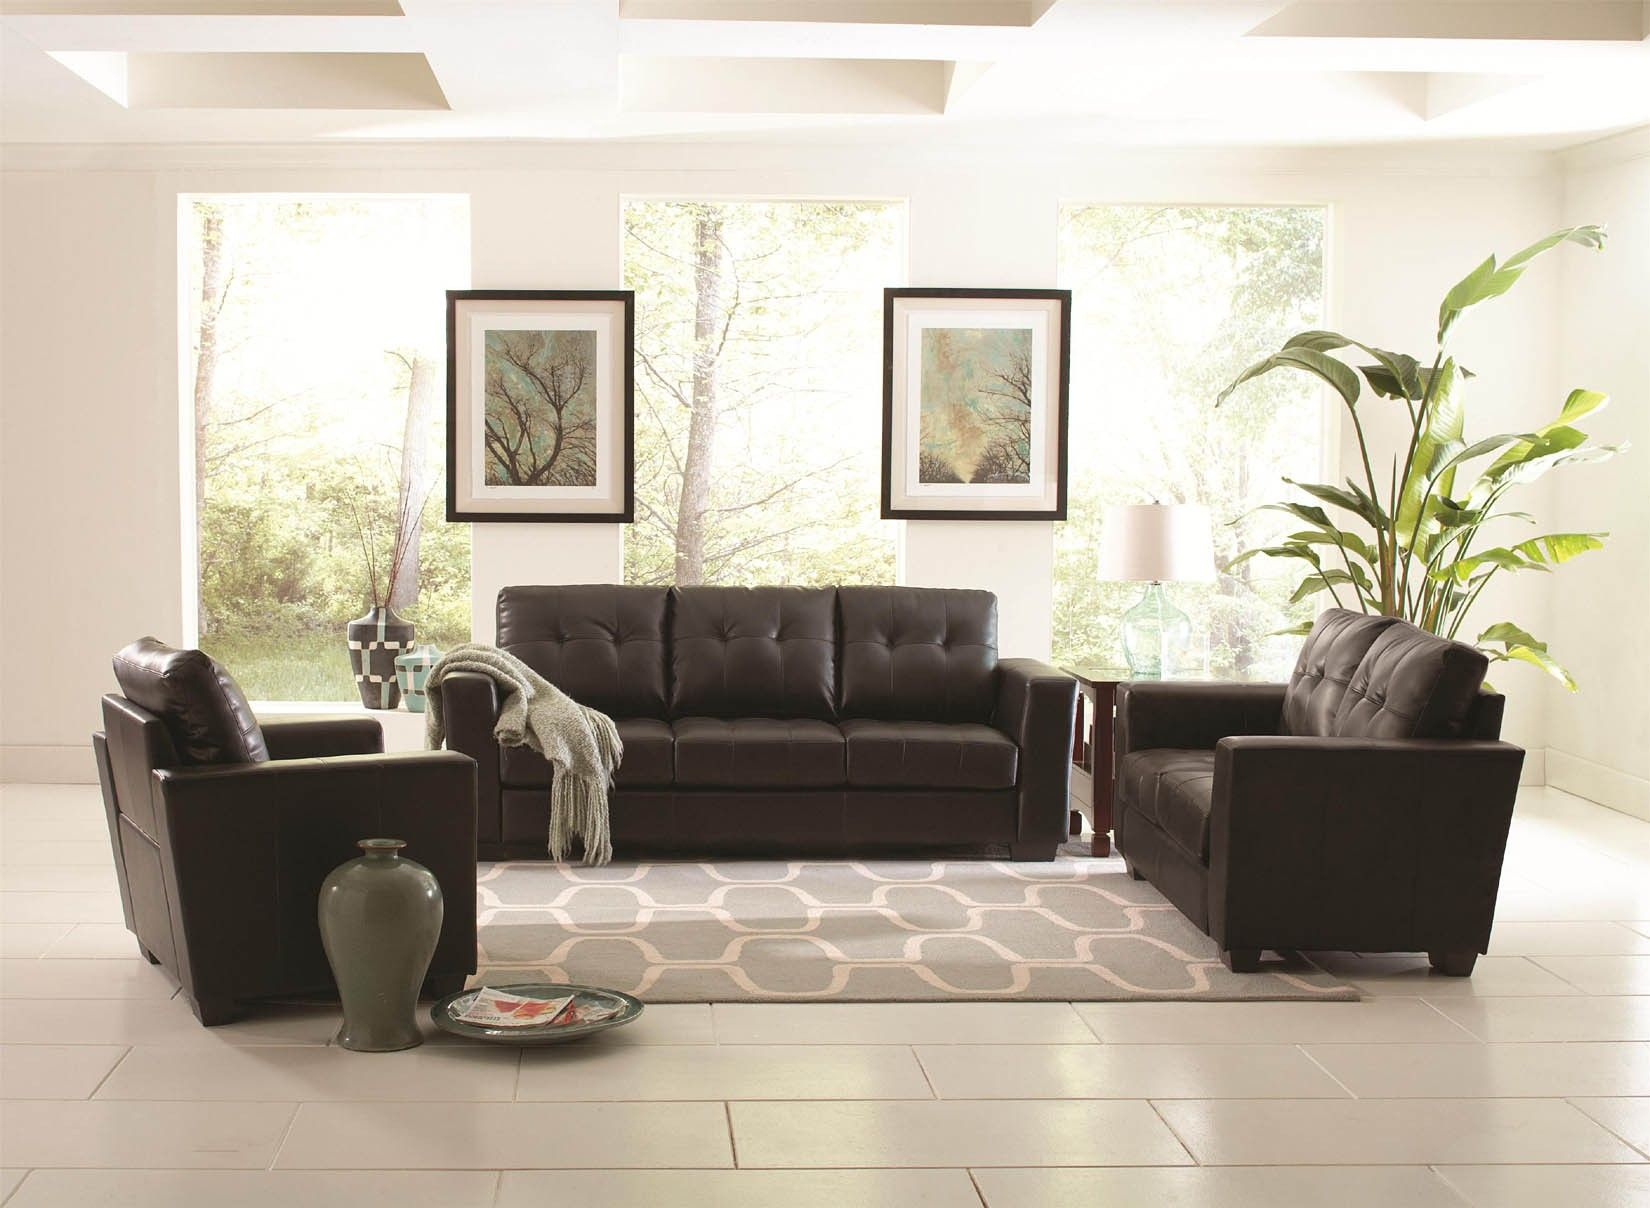 Decoration Small Living Room With Cream Wall Color Interior Design